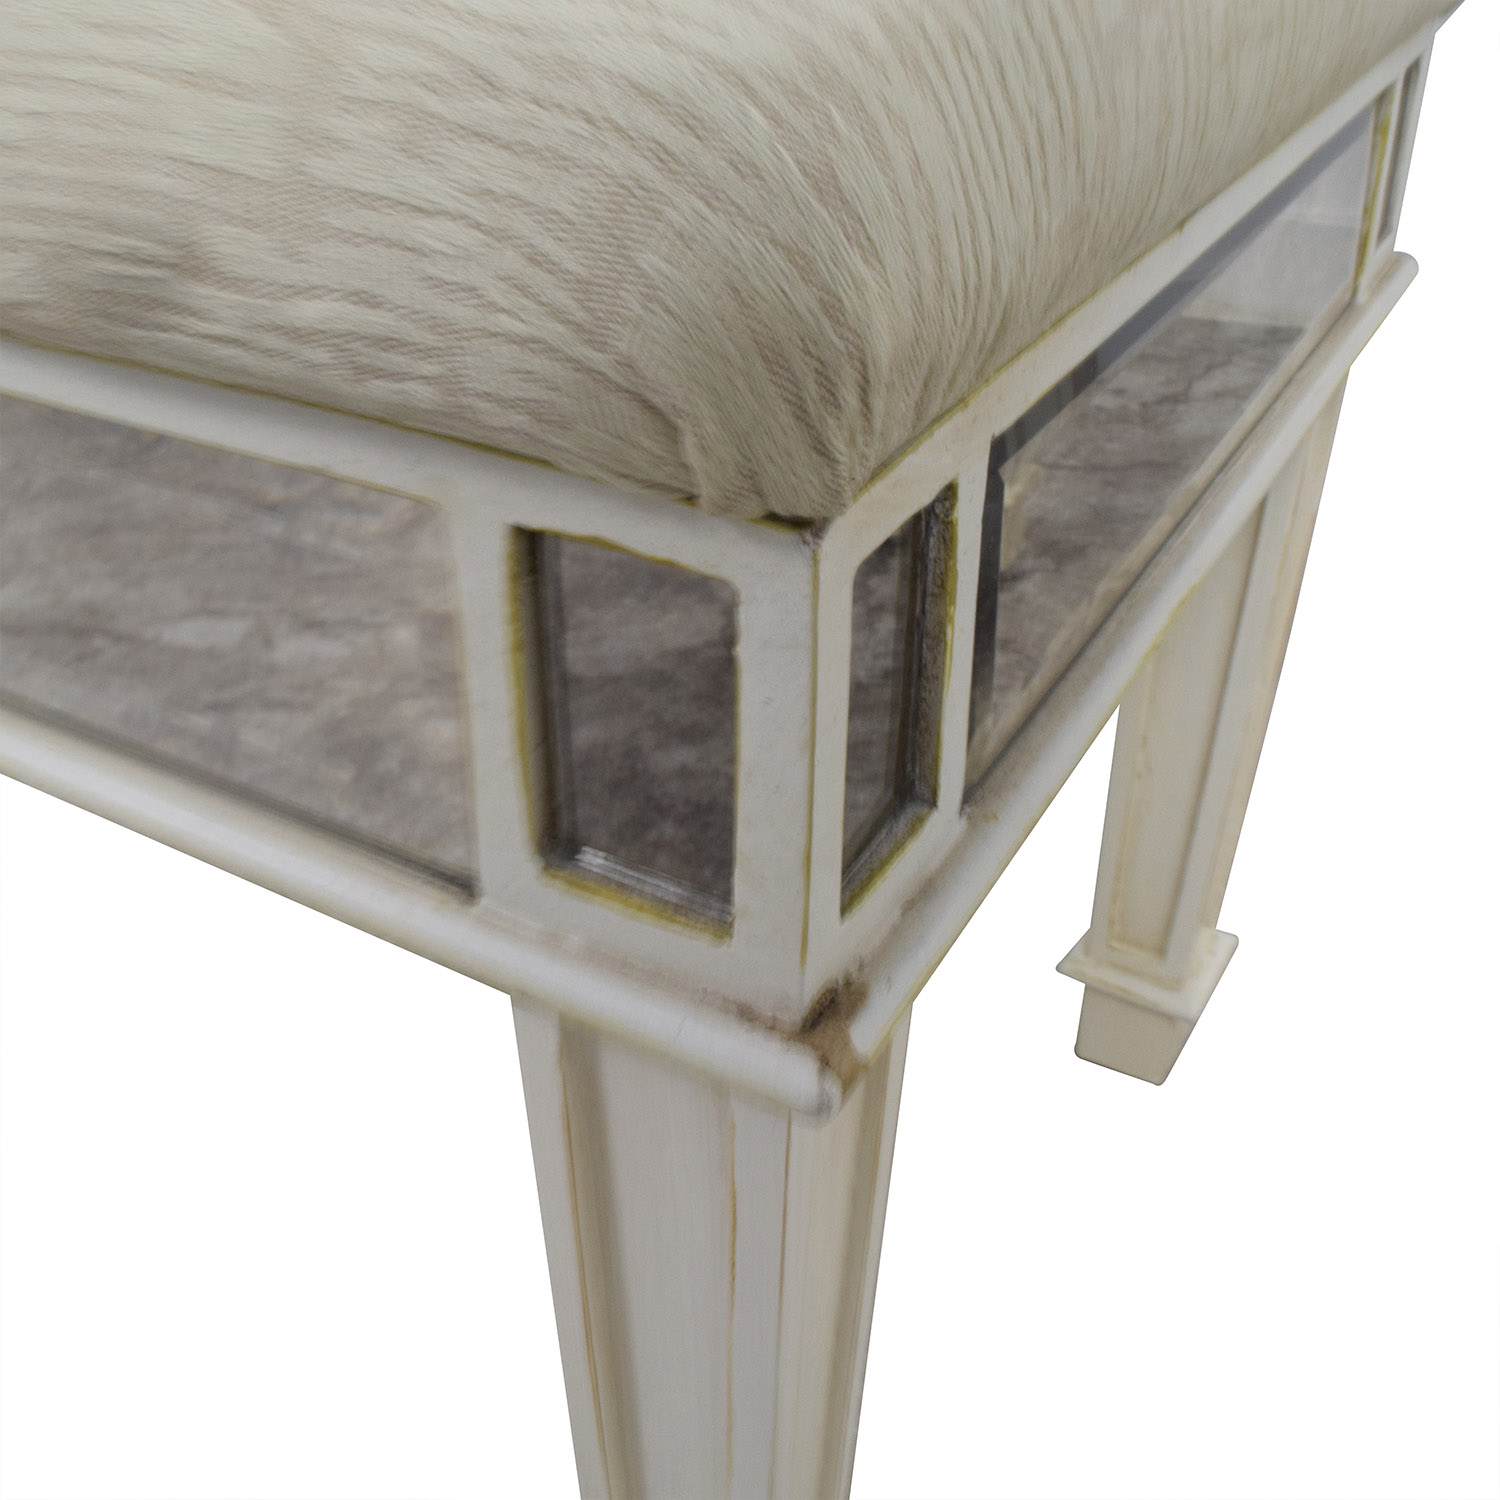 Pier 1 Imports Antique White Mirrored Vanity Table and Stool / Tables